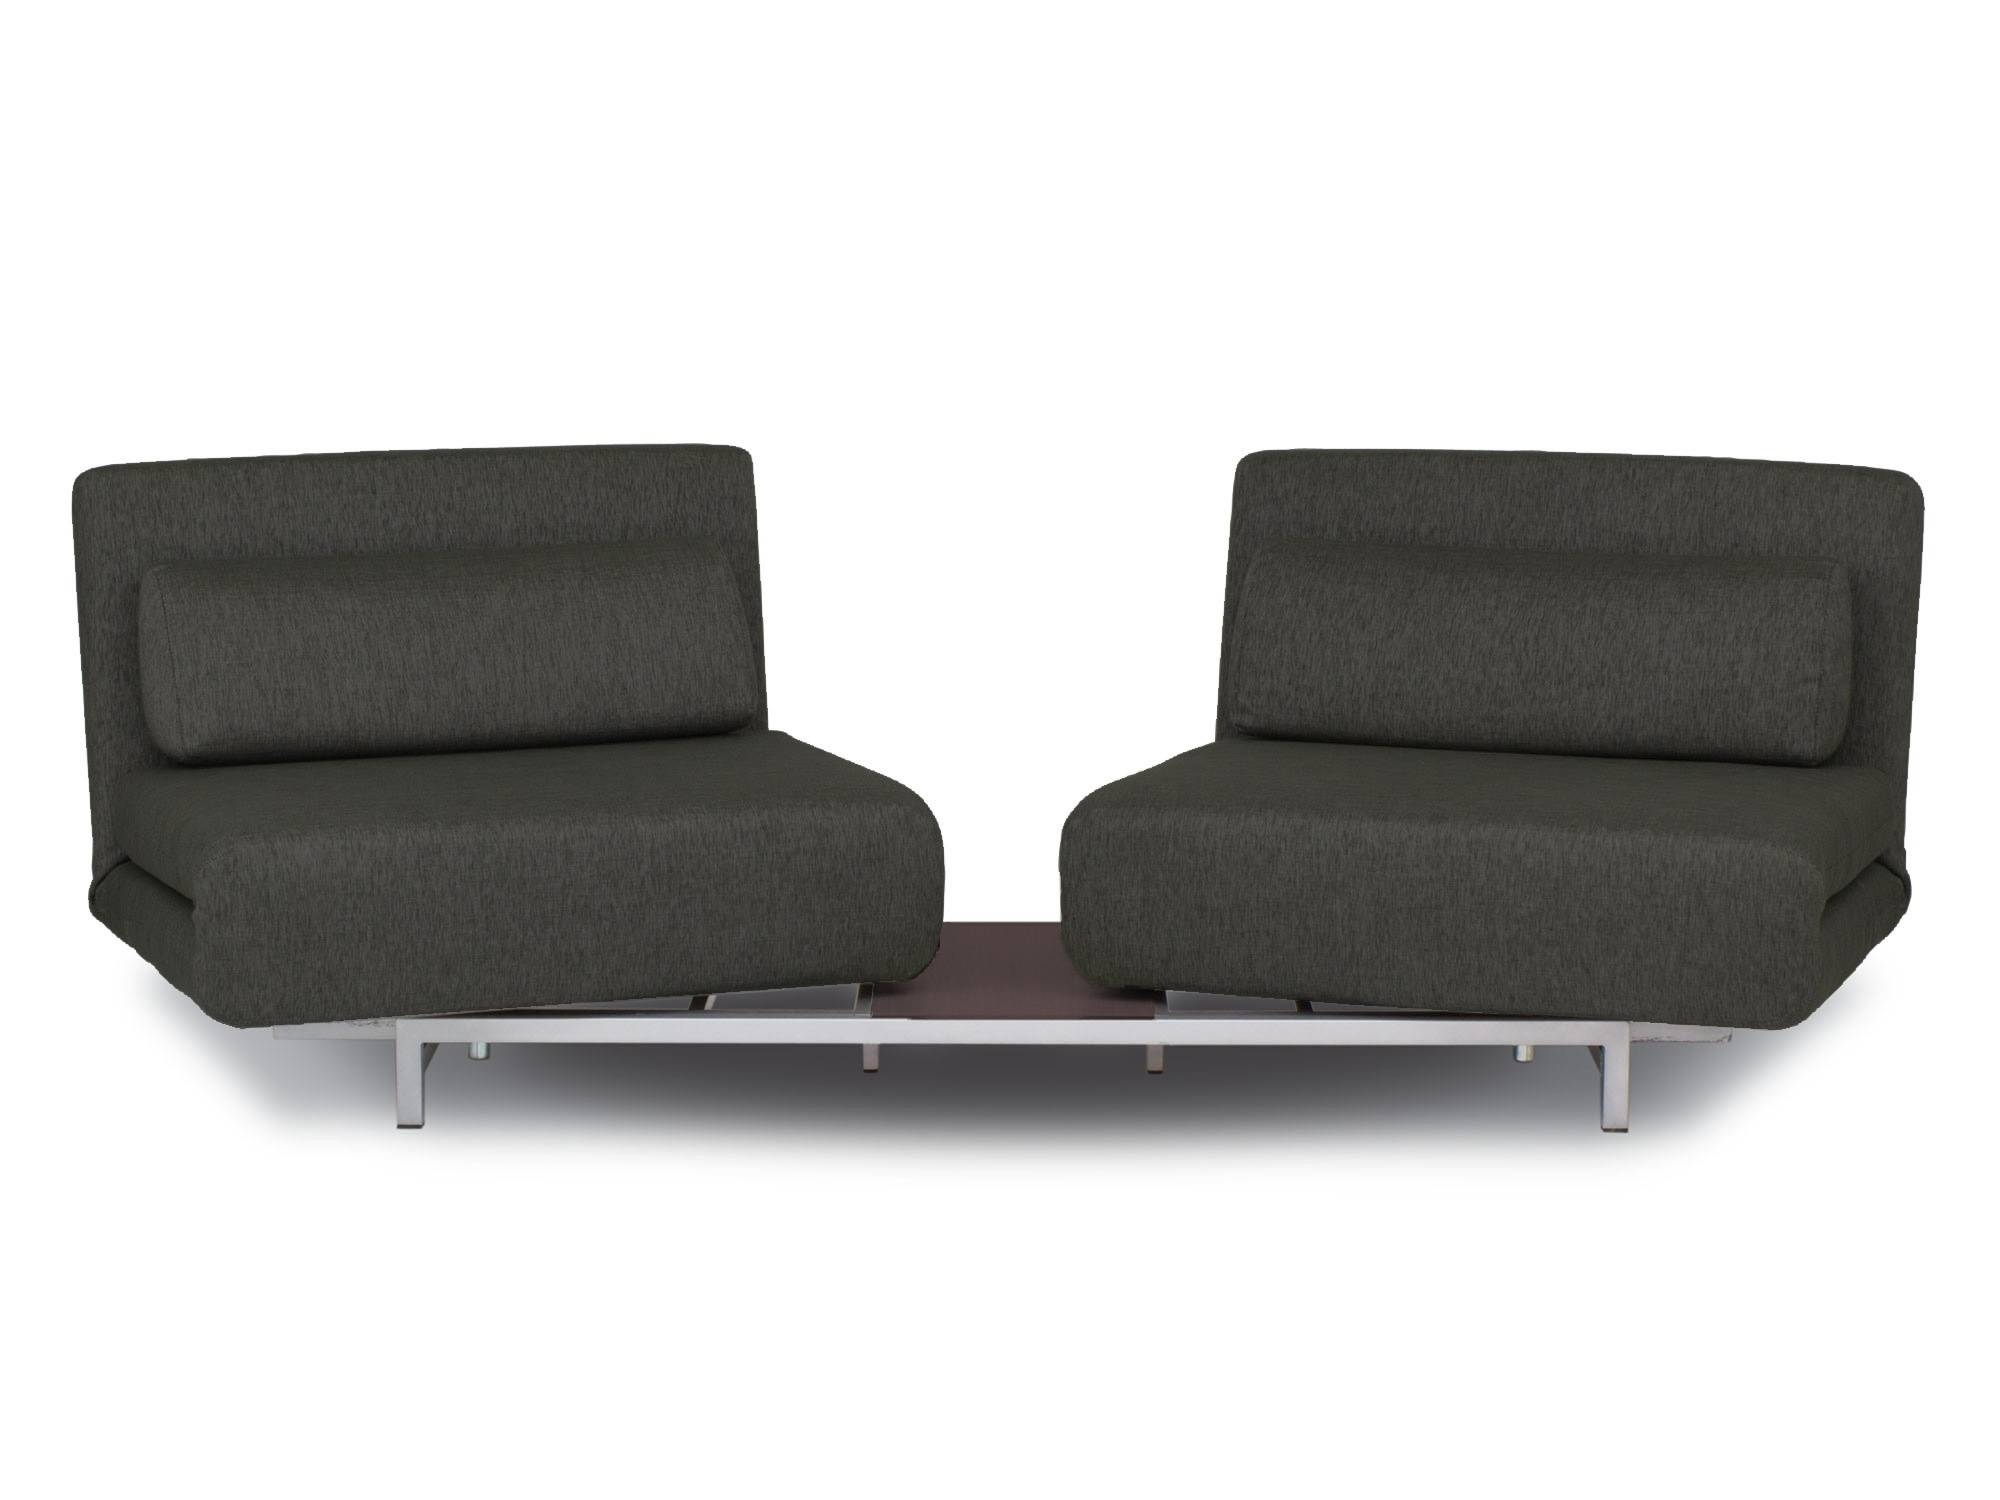 Le Vele Replica - 2 Seat Sofa Bed | Loungelovers within King Size Sofa Beds (Image 9 of 15)